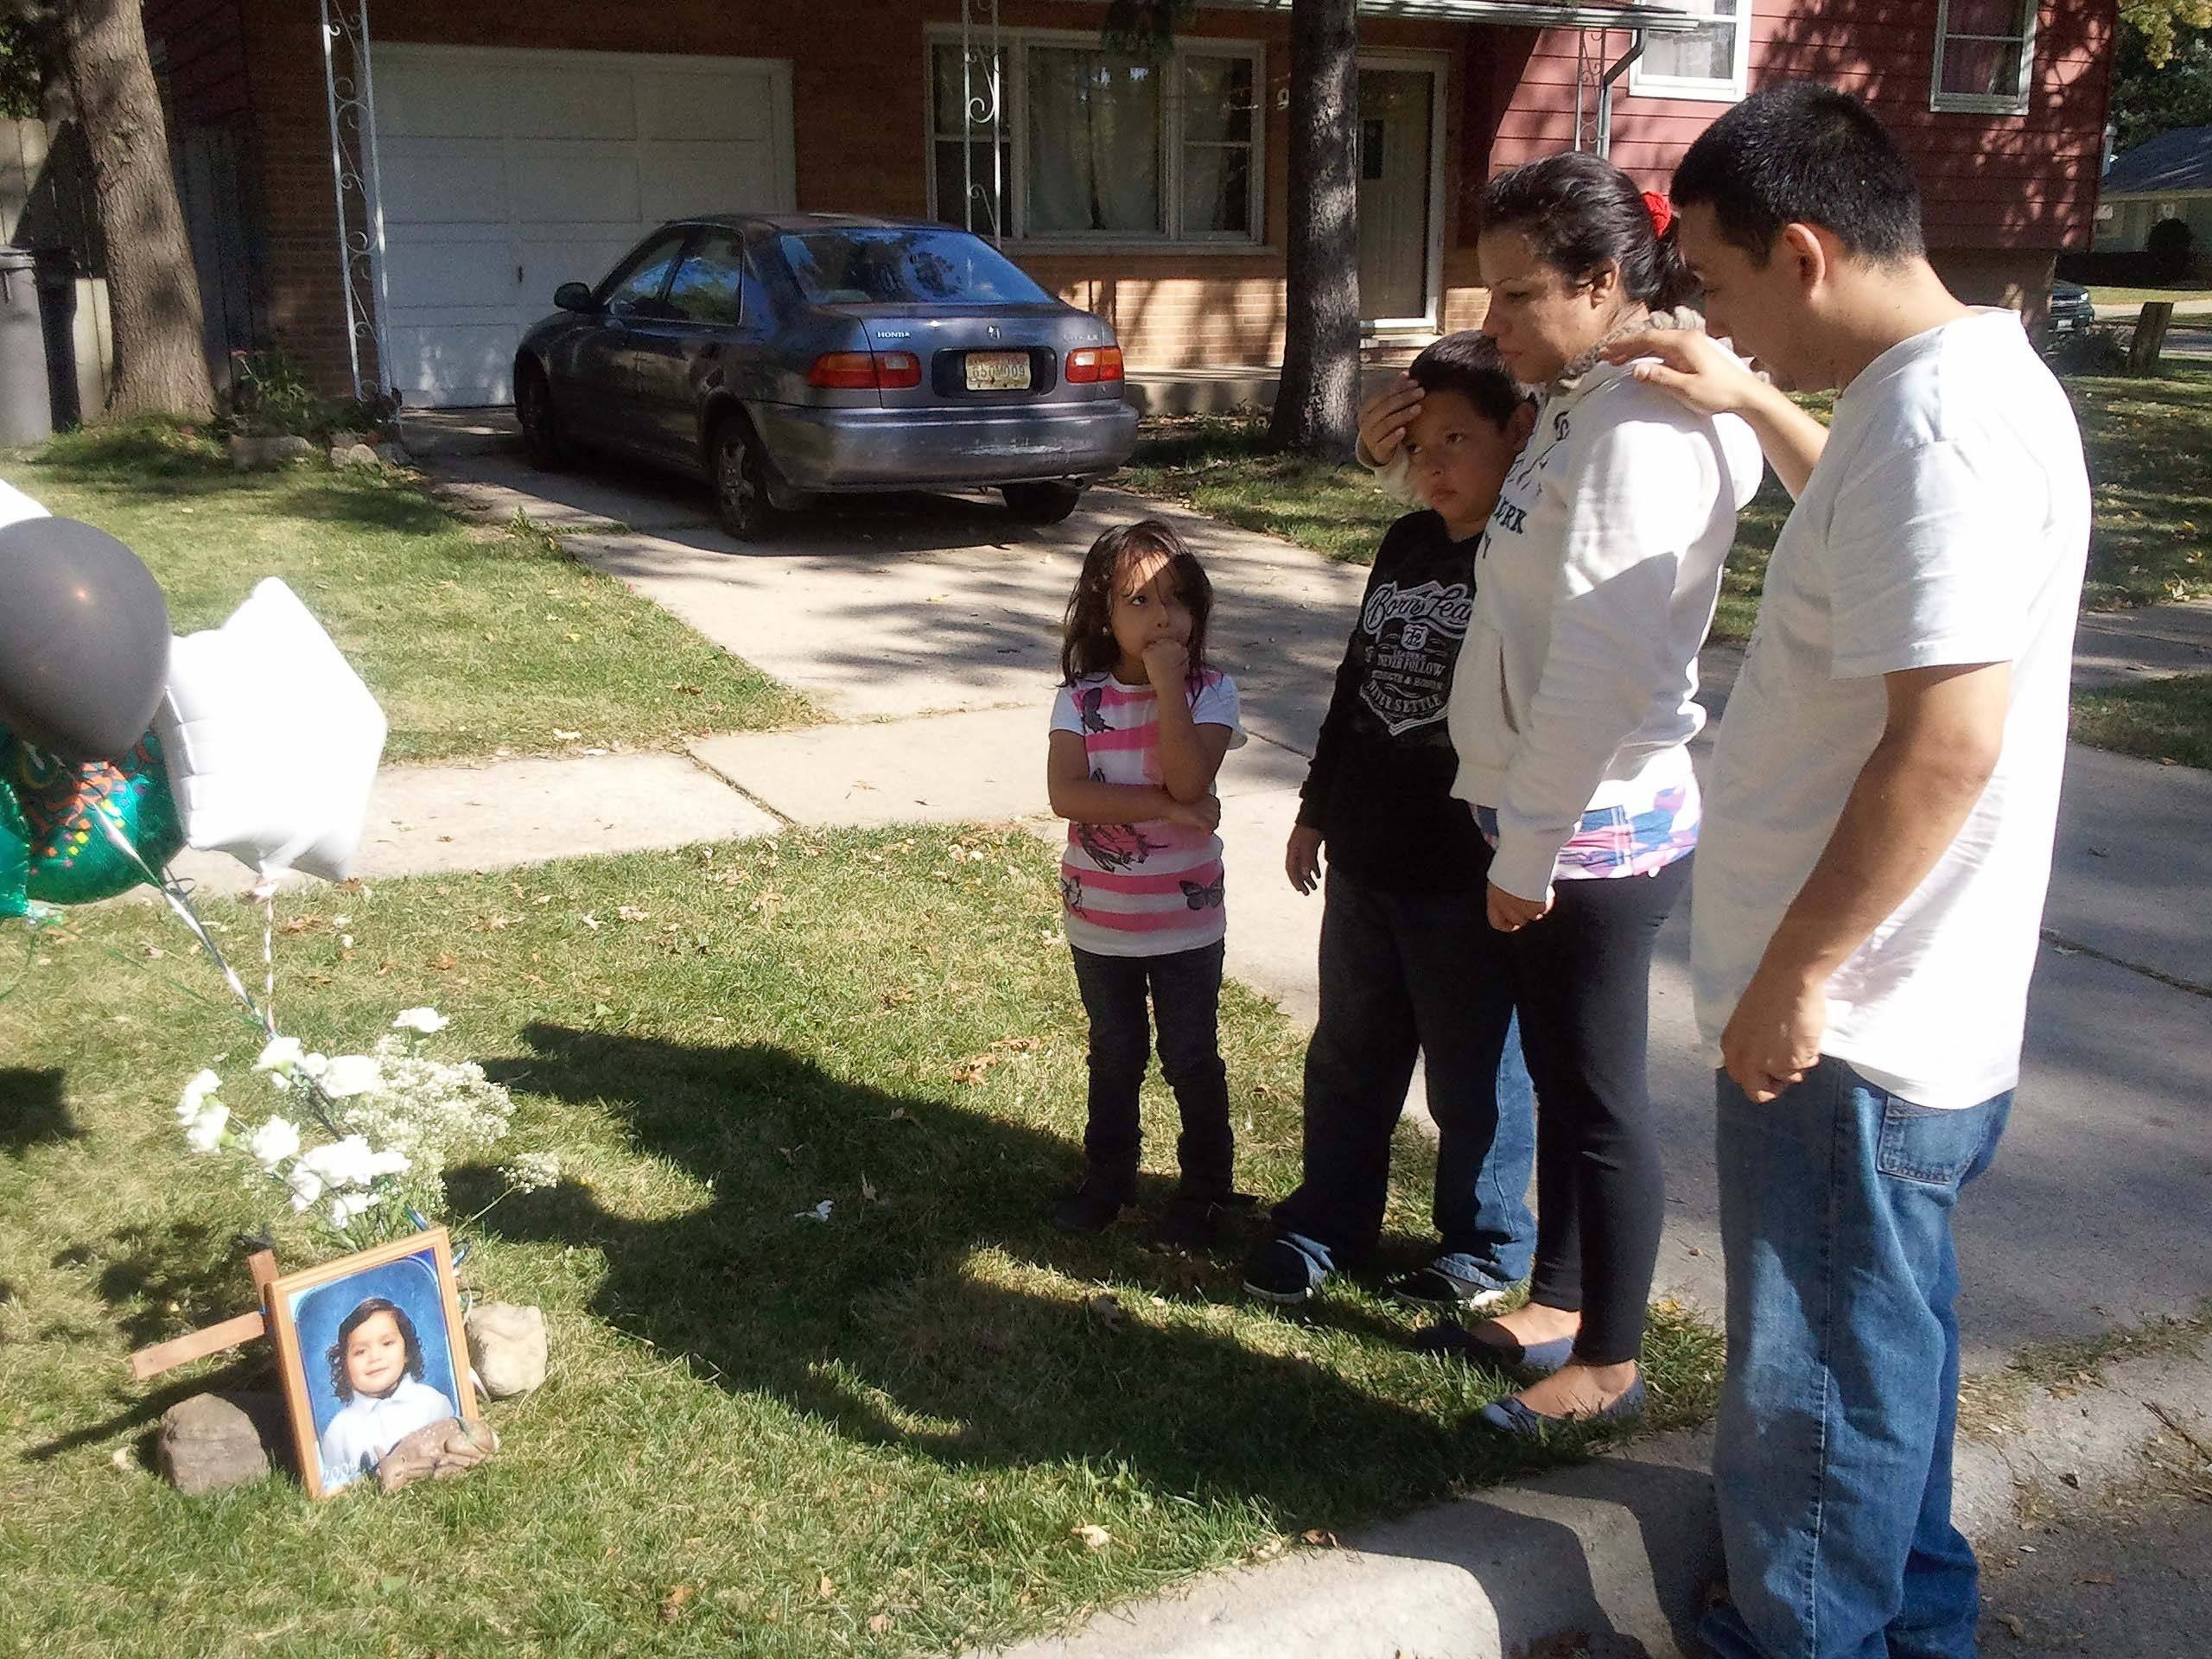 The death of 5-year-old Eric Galarza Jr. is mourned by neighbors Jorge Linares, from right, his wife Eglaen Padilla, and their children Jorge, 7, and Natalia, 5. Eric and his kids were at each other's houses almost every day, Jorge Linares said.